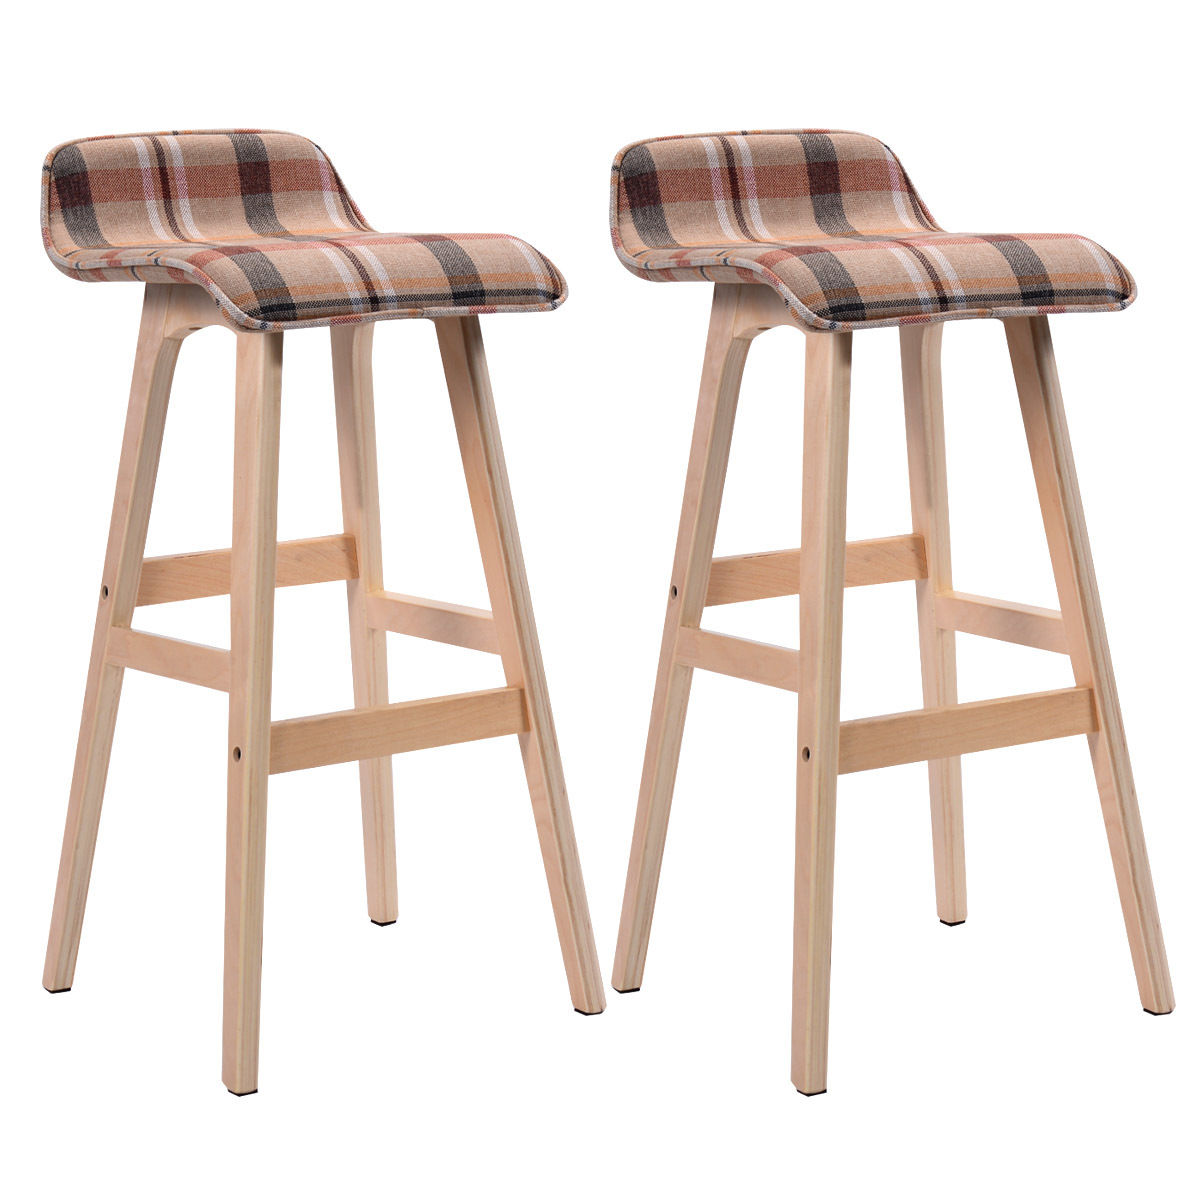 Giantex Set of 2 29-Inch Vintage Wood Bar Stool Modern Dining Chair Counter Tall Linen Fabric Kitchen Bar Furniture 2*HW52976RE the village of retro furniture vintage metal bar chair anti rust treatment bar furniture set wood bar chair armrest dining chair